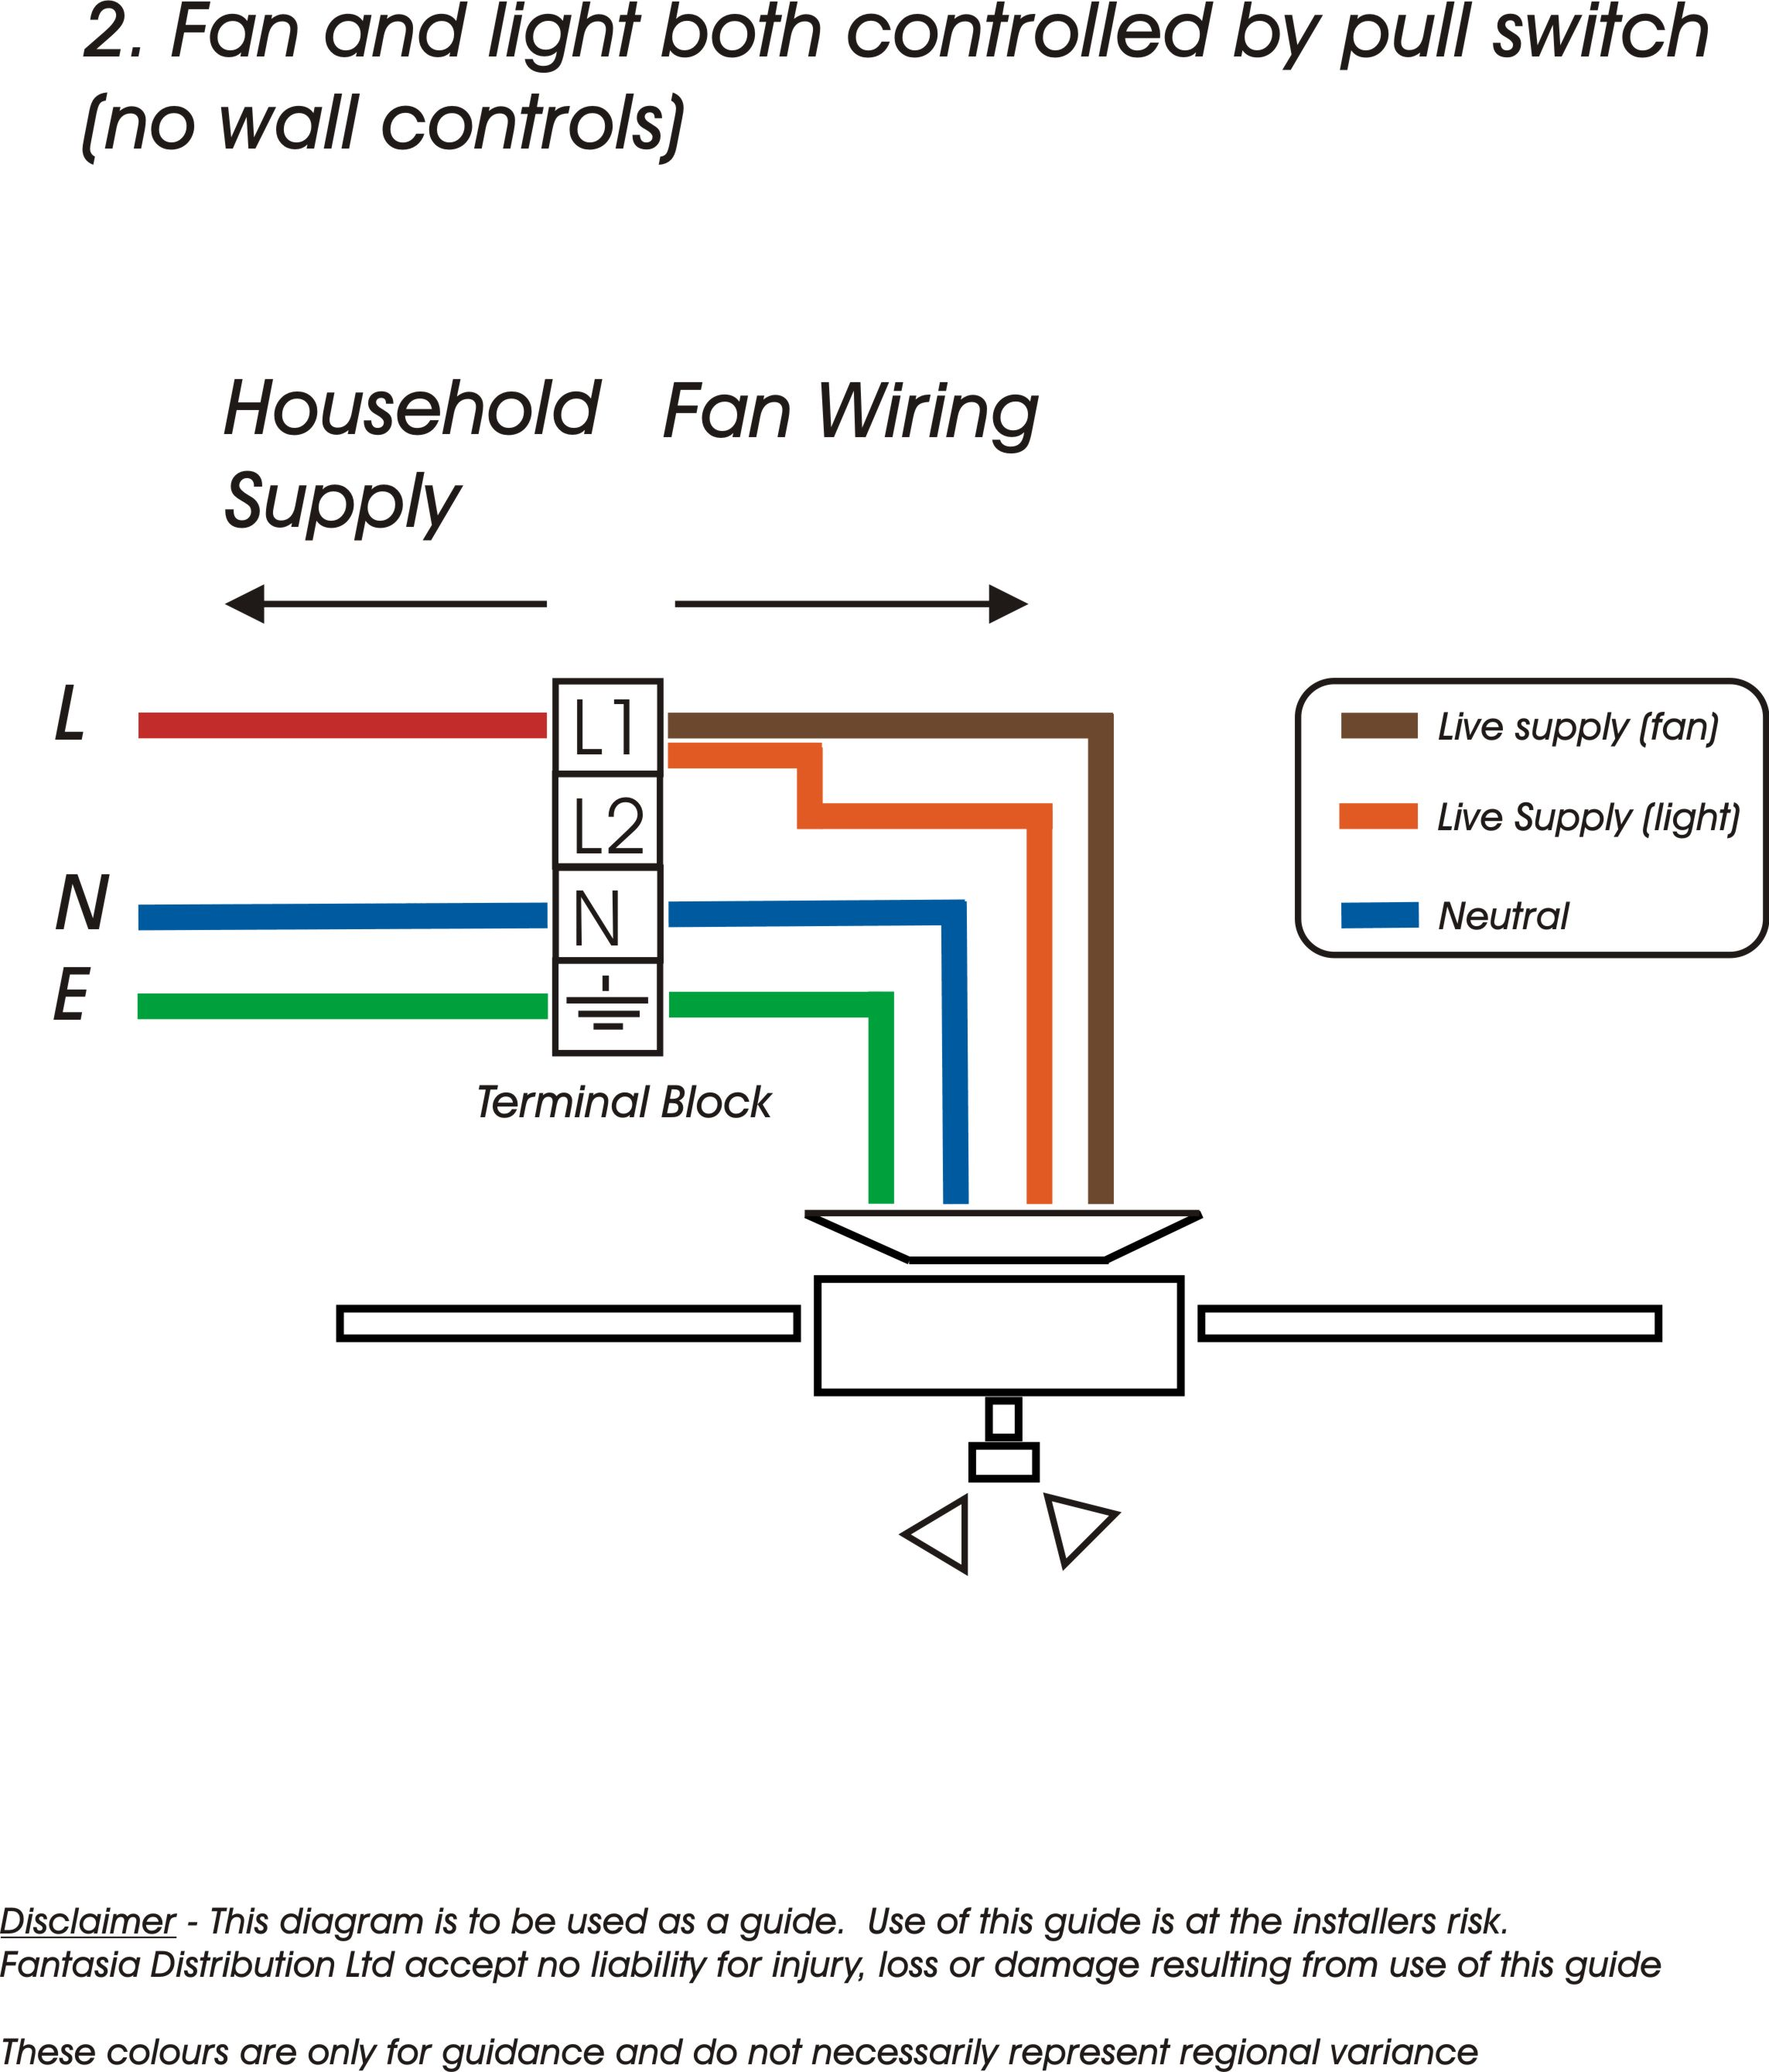 wiring ceiling fans 2 hampton bay ceiling fan motor wiring diagram integralbook com hampton bay ceiling fan wiring diagram red wire at bakdesigns.co